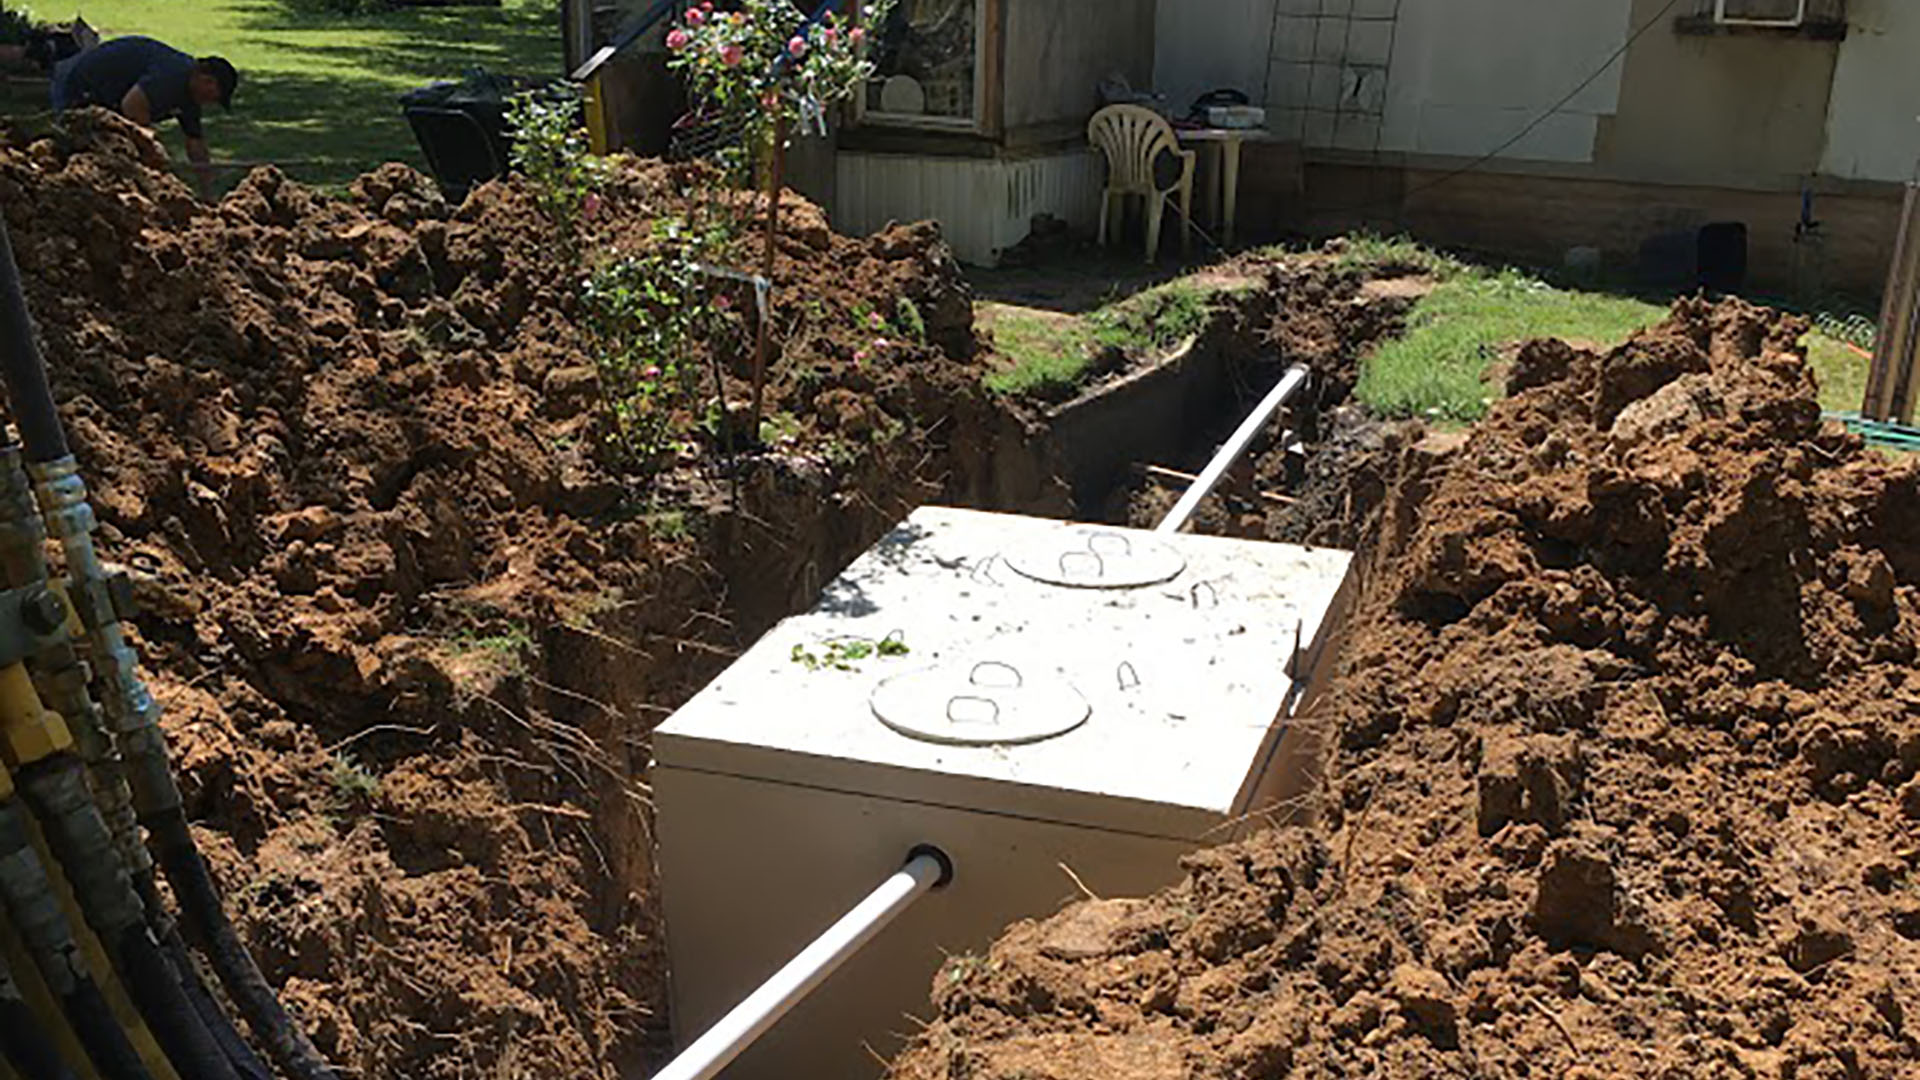 Selmer Septic Tank Pumping, Septic Company and Septic Tank Installation